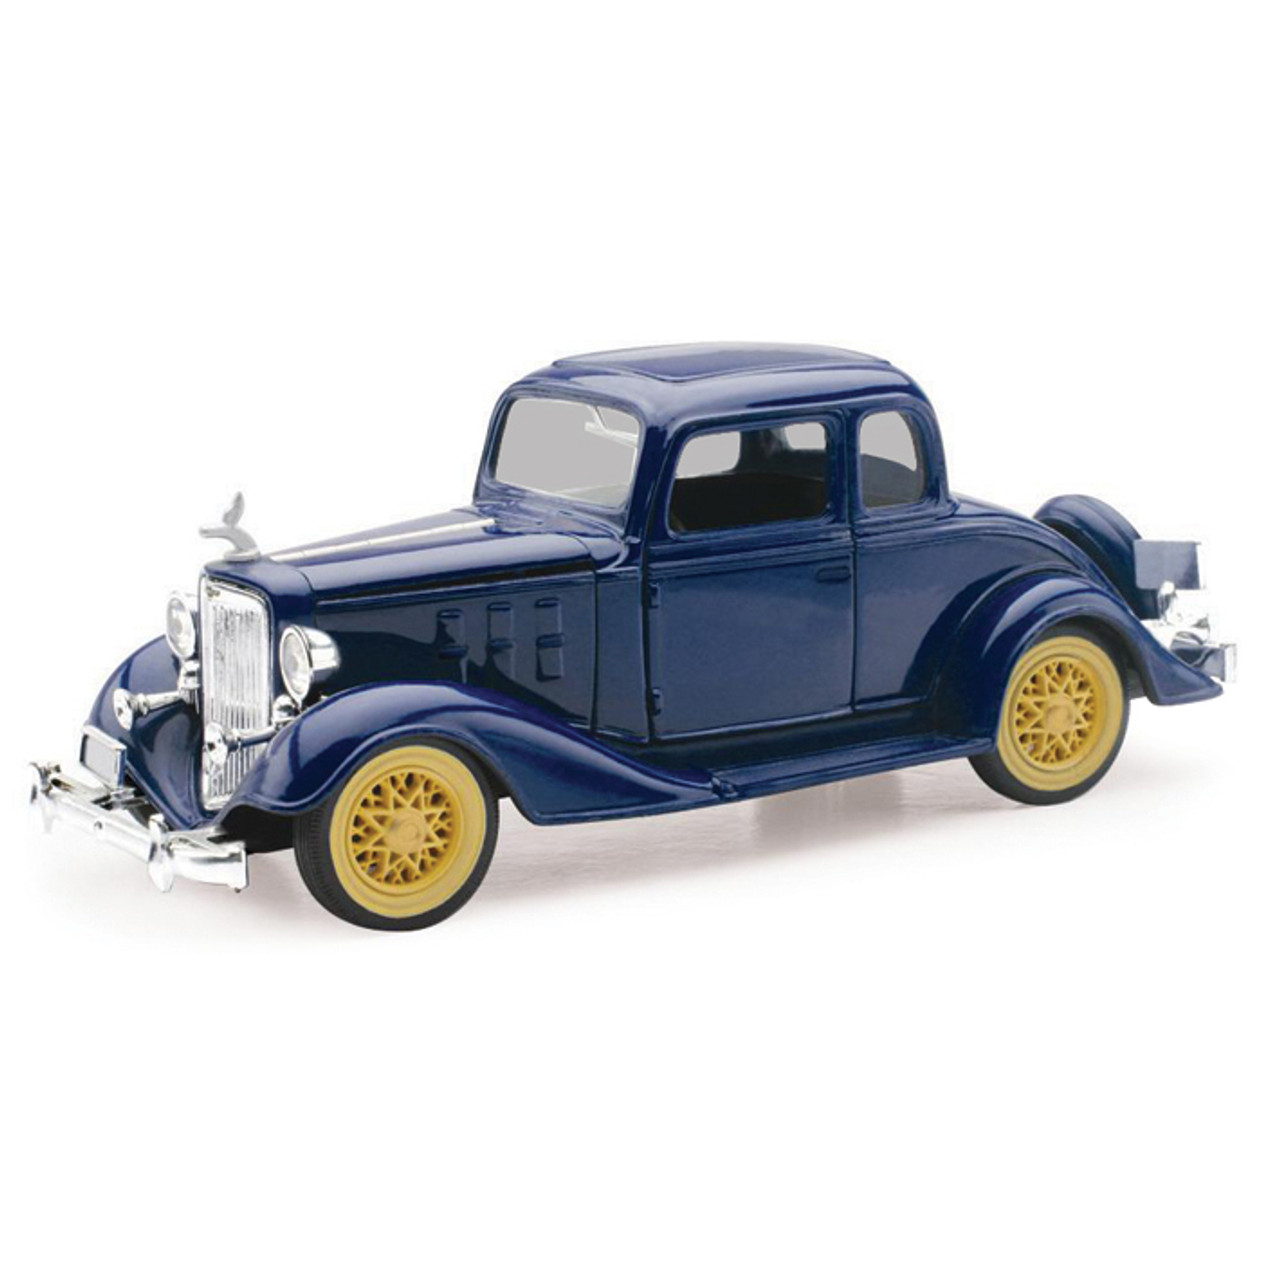 medium resolution of 1933 chevrolet eagle coupe main image